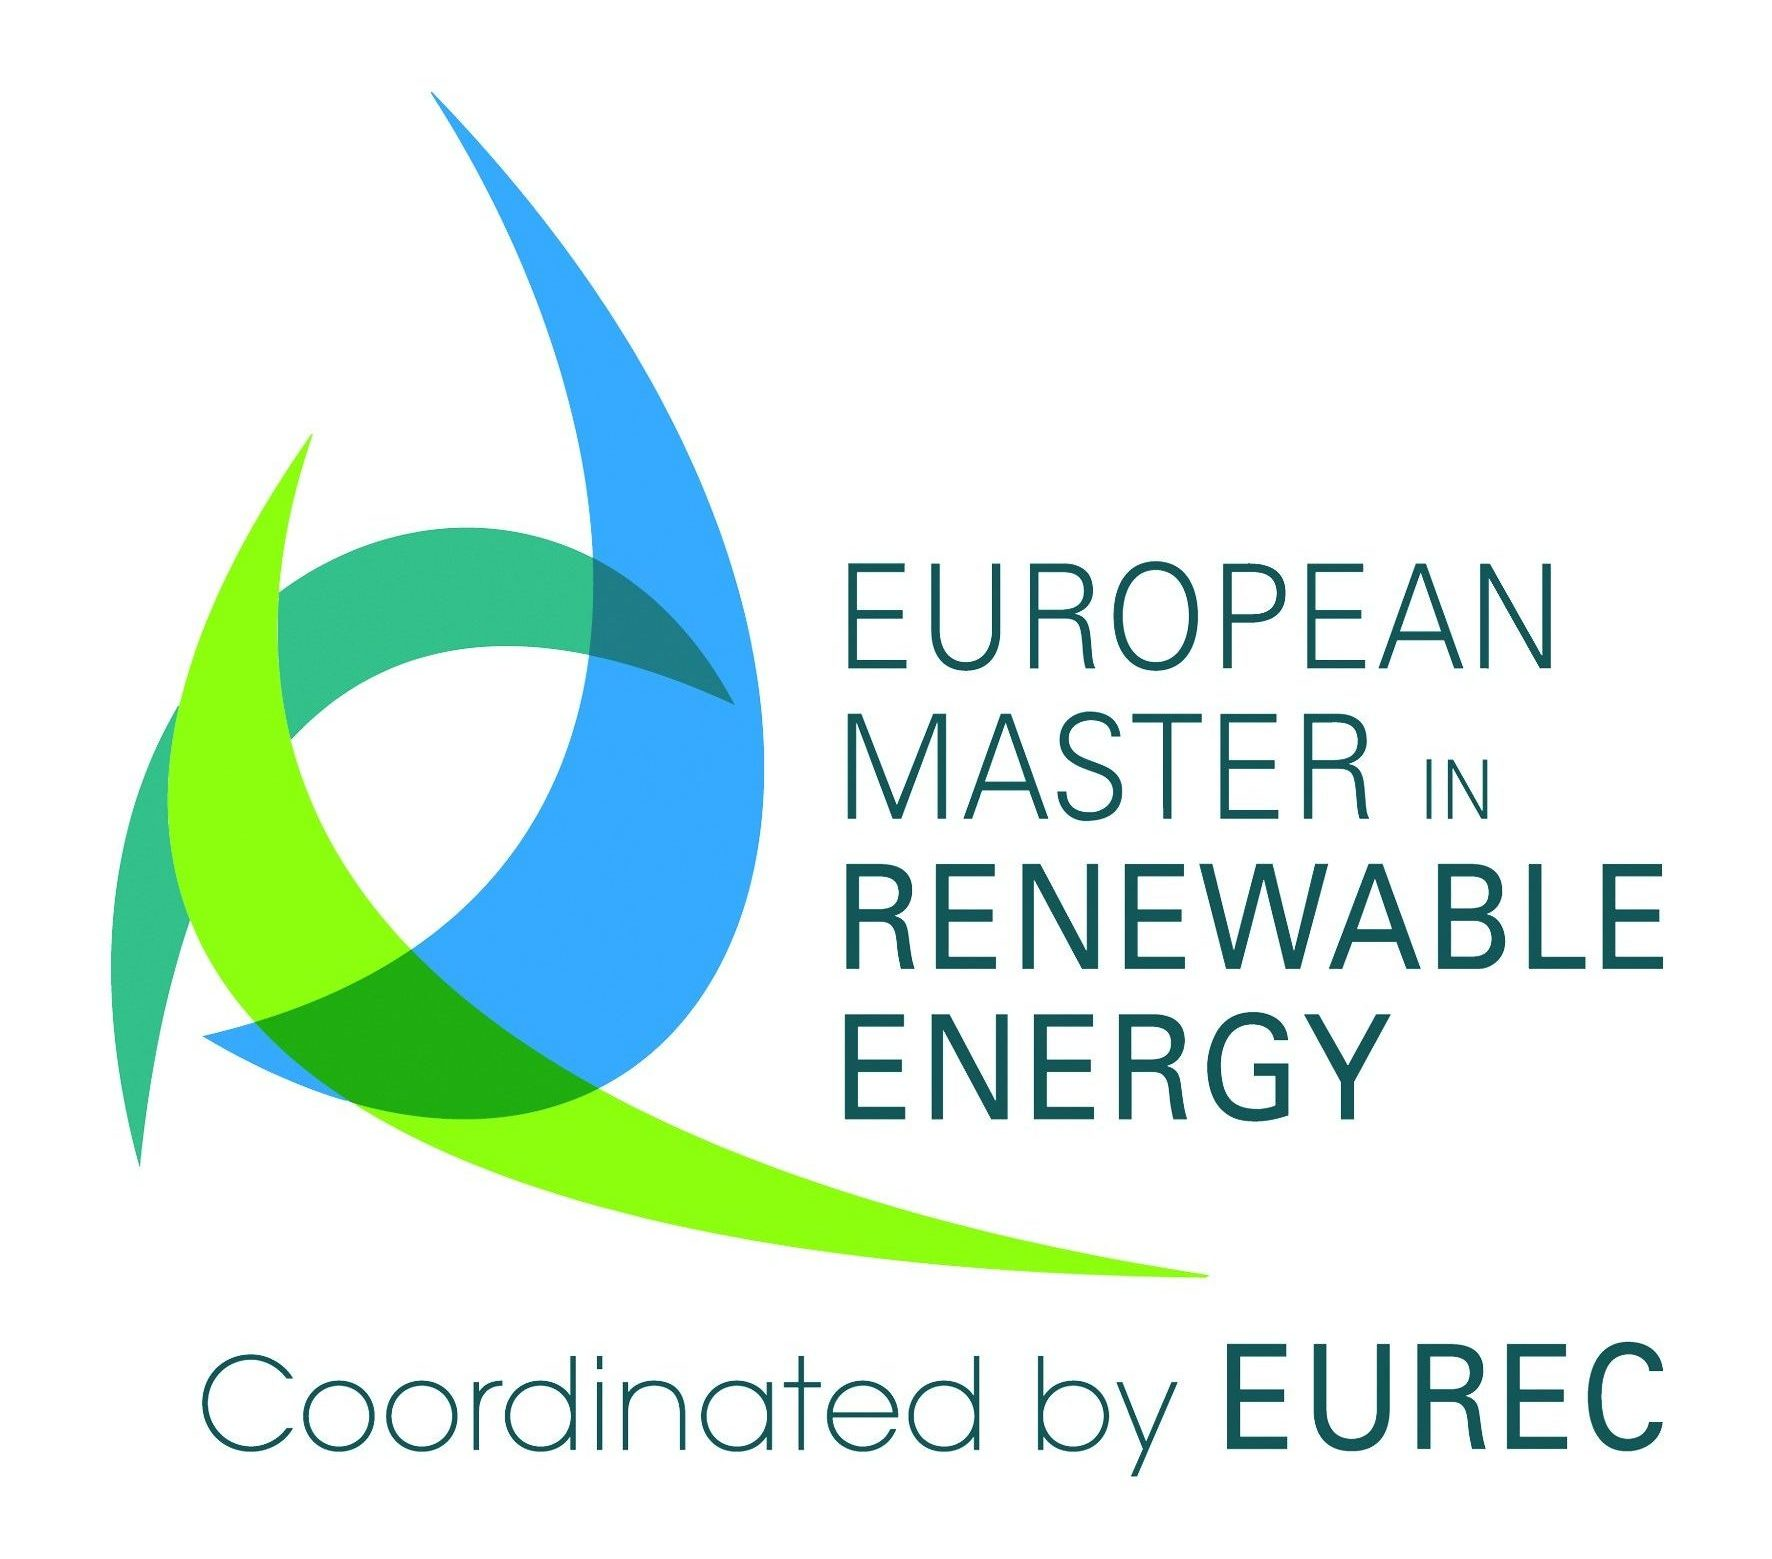 European Master in Renewable Energy by EUREC